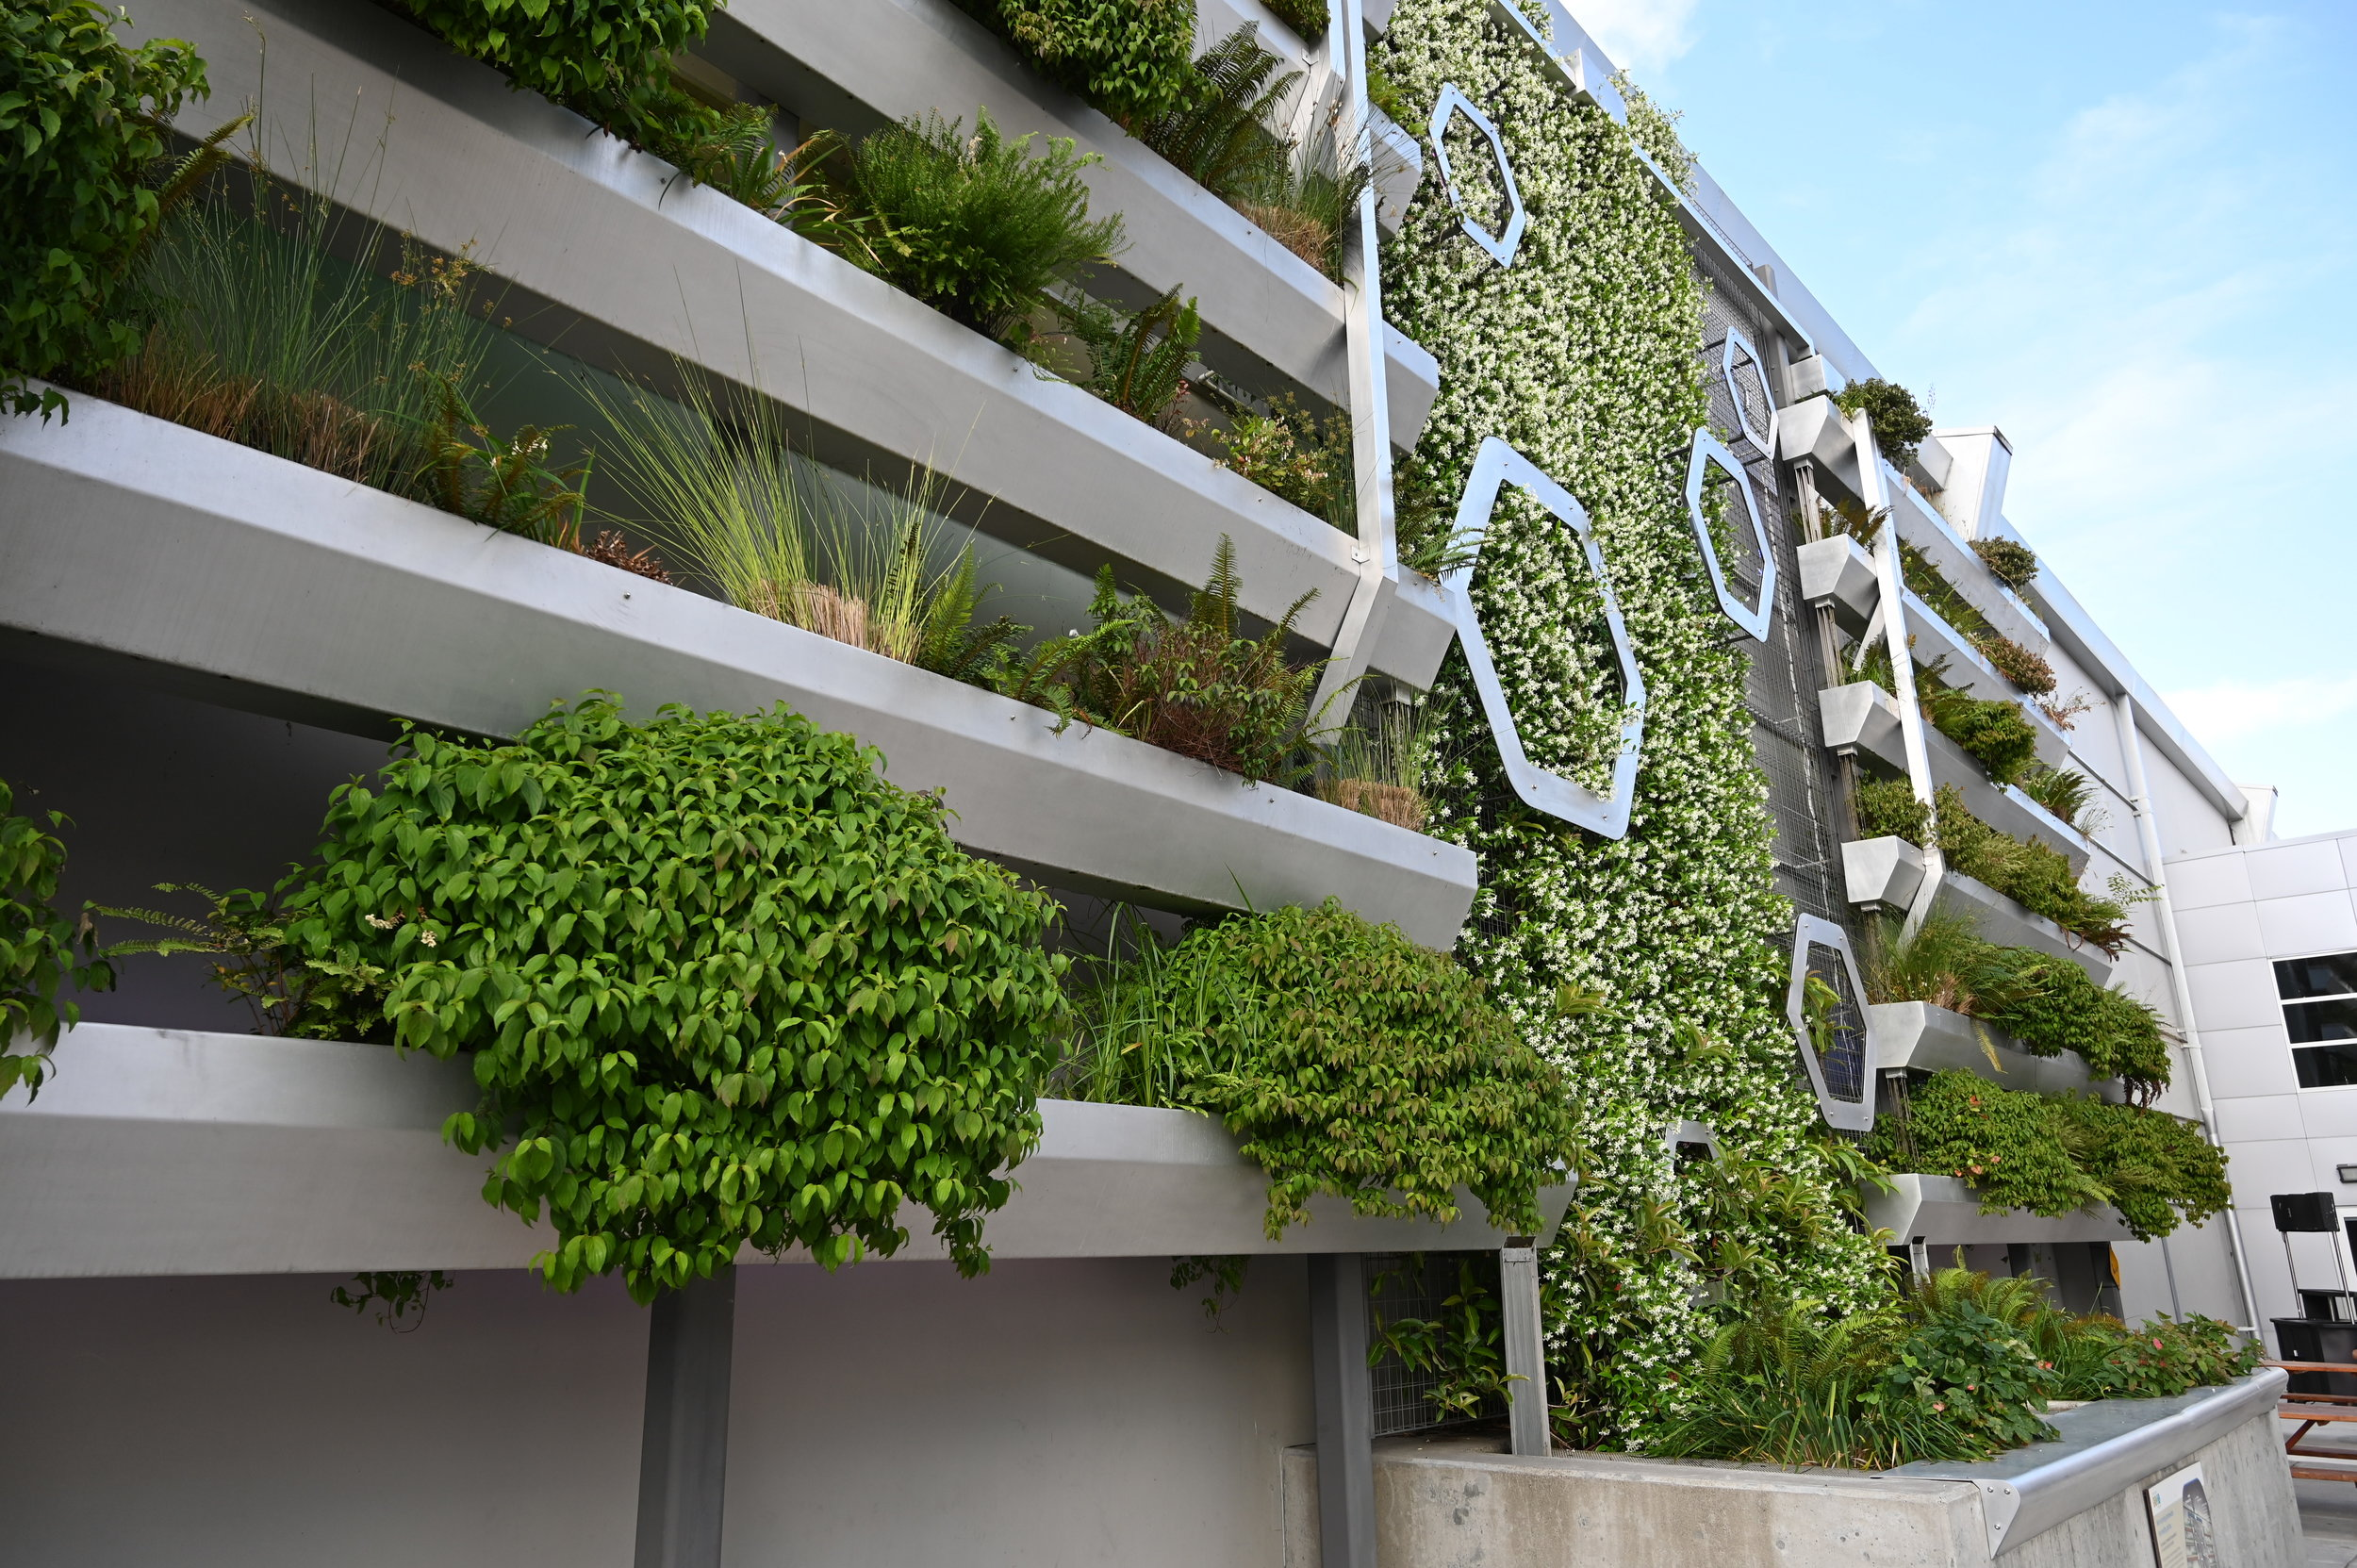 Green Wall from close up showing expanse with hexagons and mature sedges and grasses